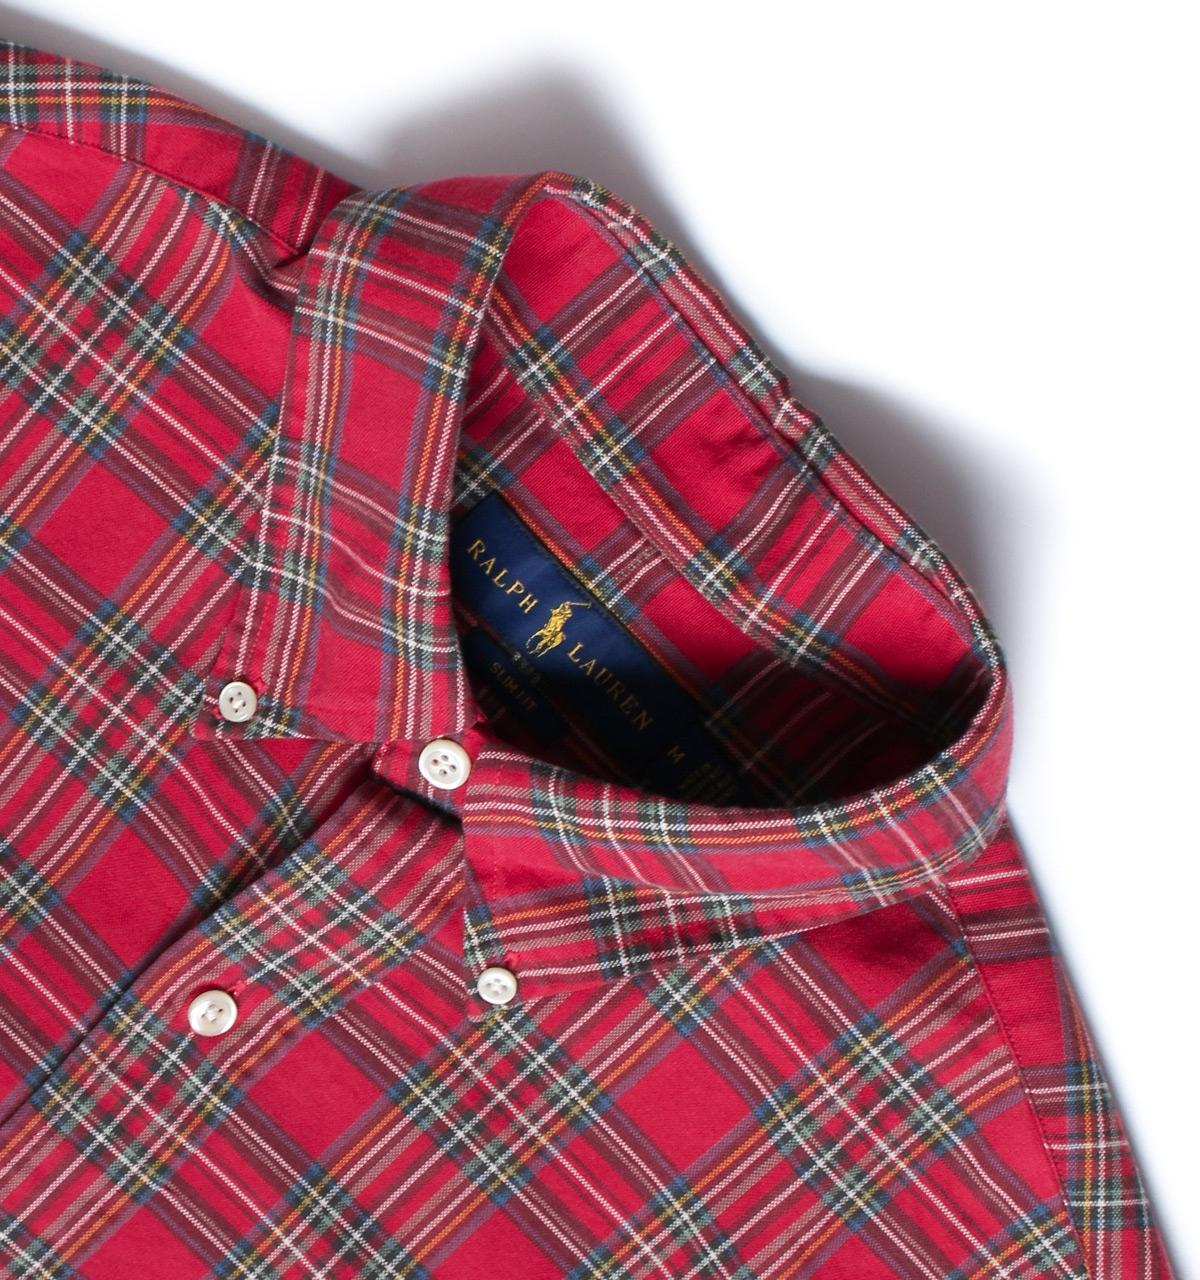 502e206f4 Polo Ralph Lauren Red   Green Plaid Slim Fit Pocket Oxford Shirt in ...